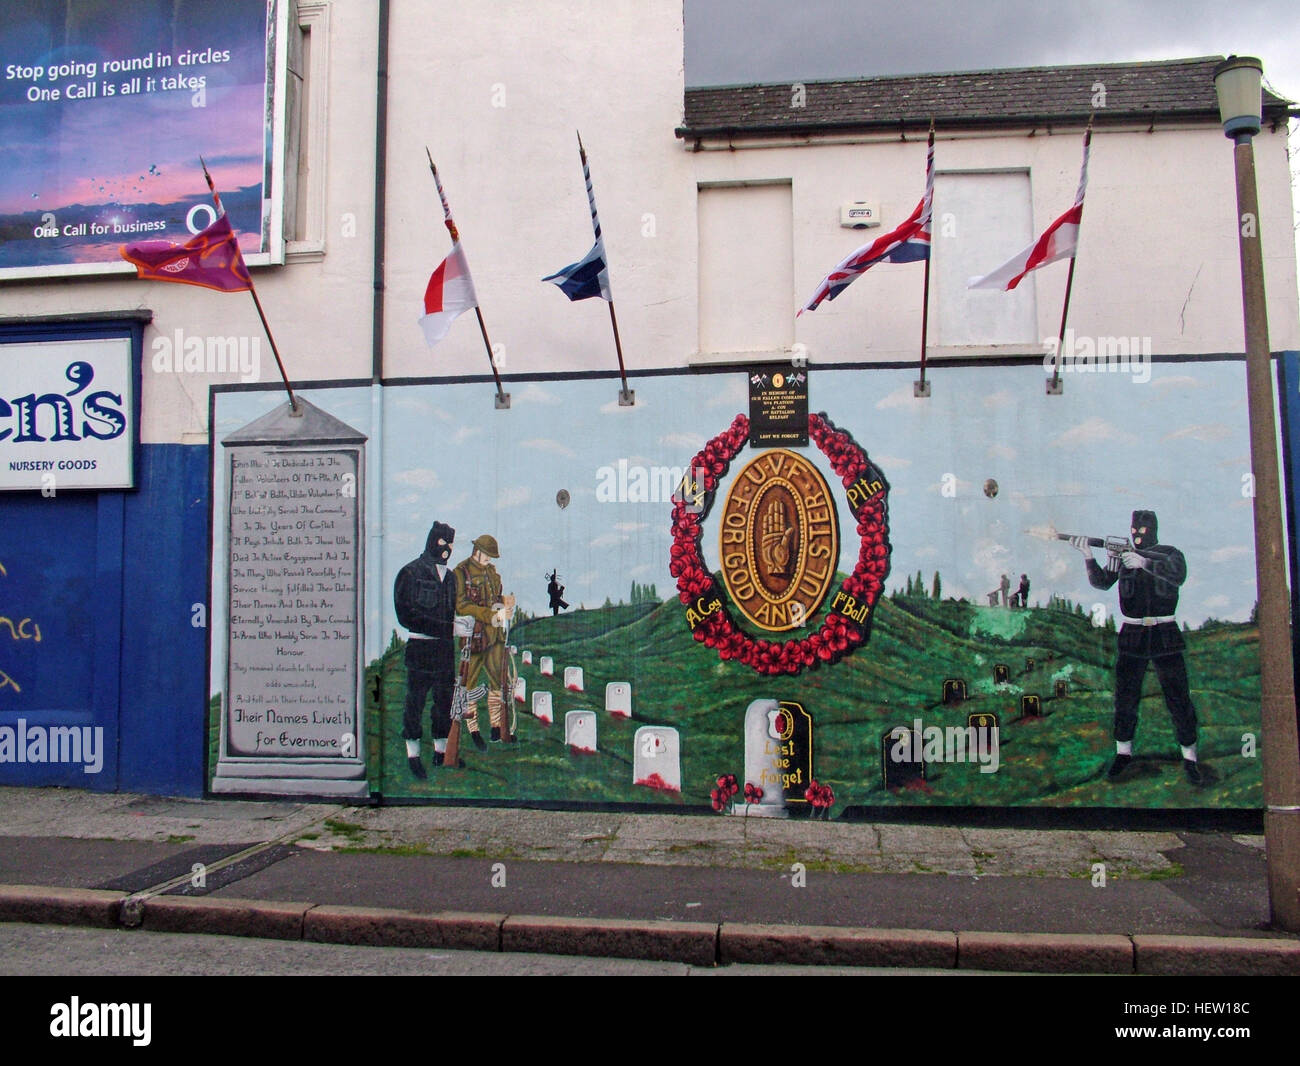 Shankill Road Mural -For God for Ulster, West Belfast, Northern Ireland, UK Stock Photo